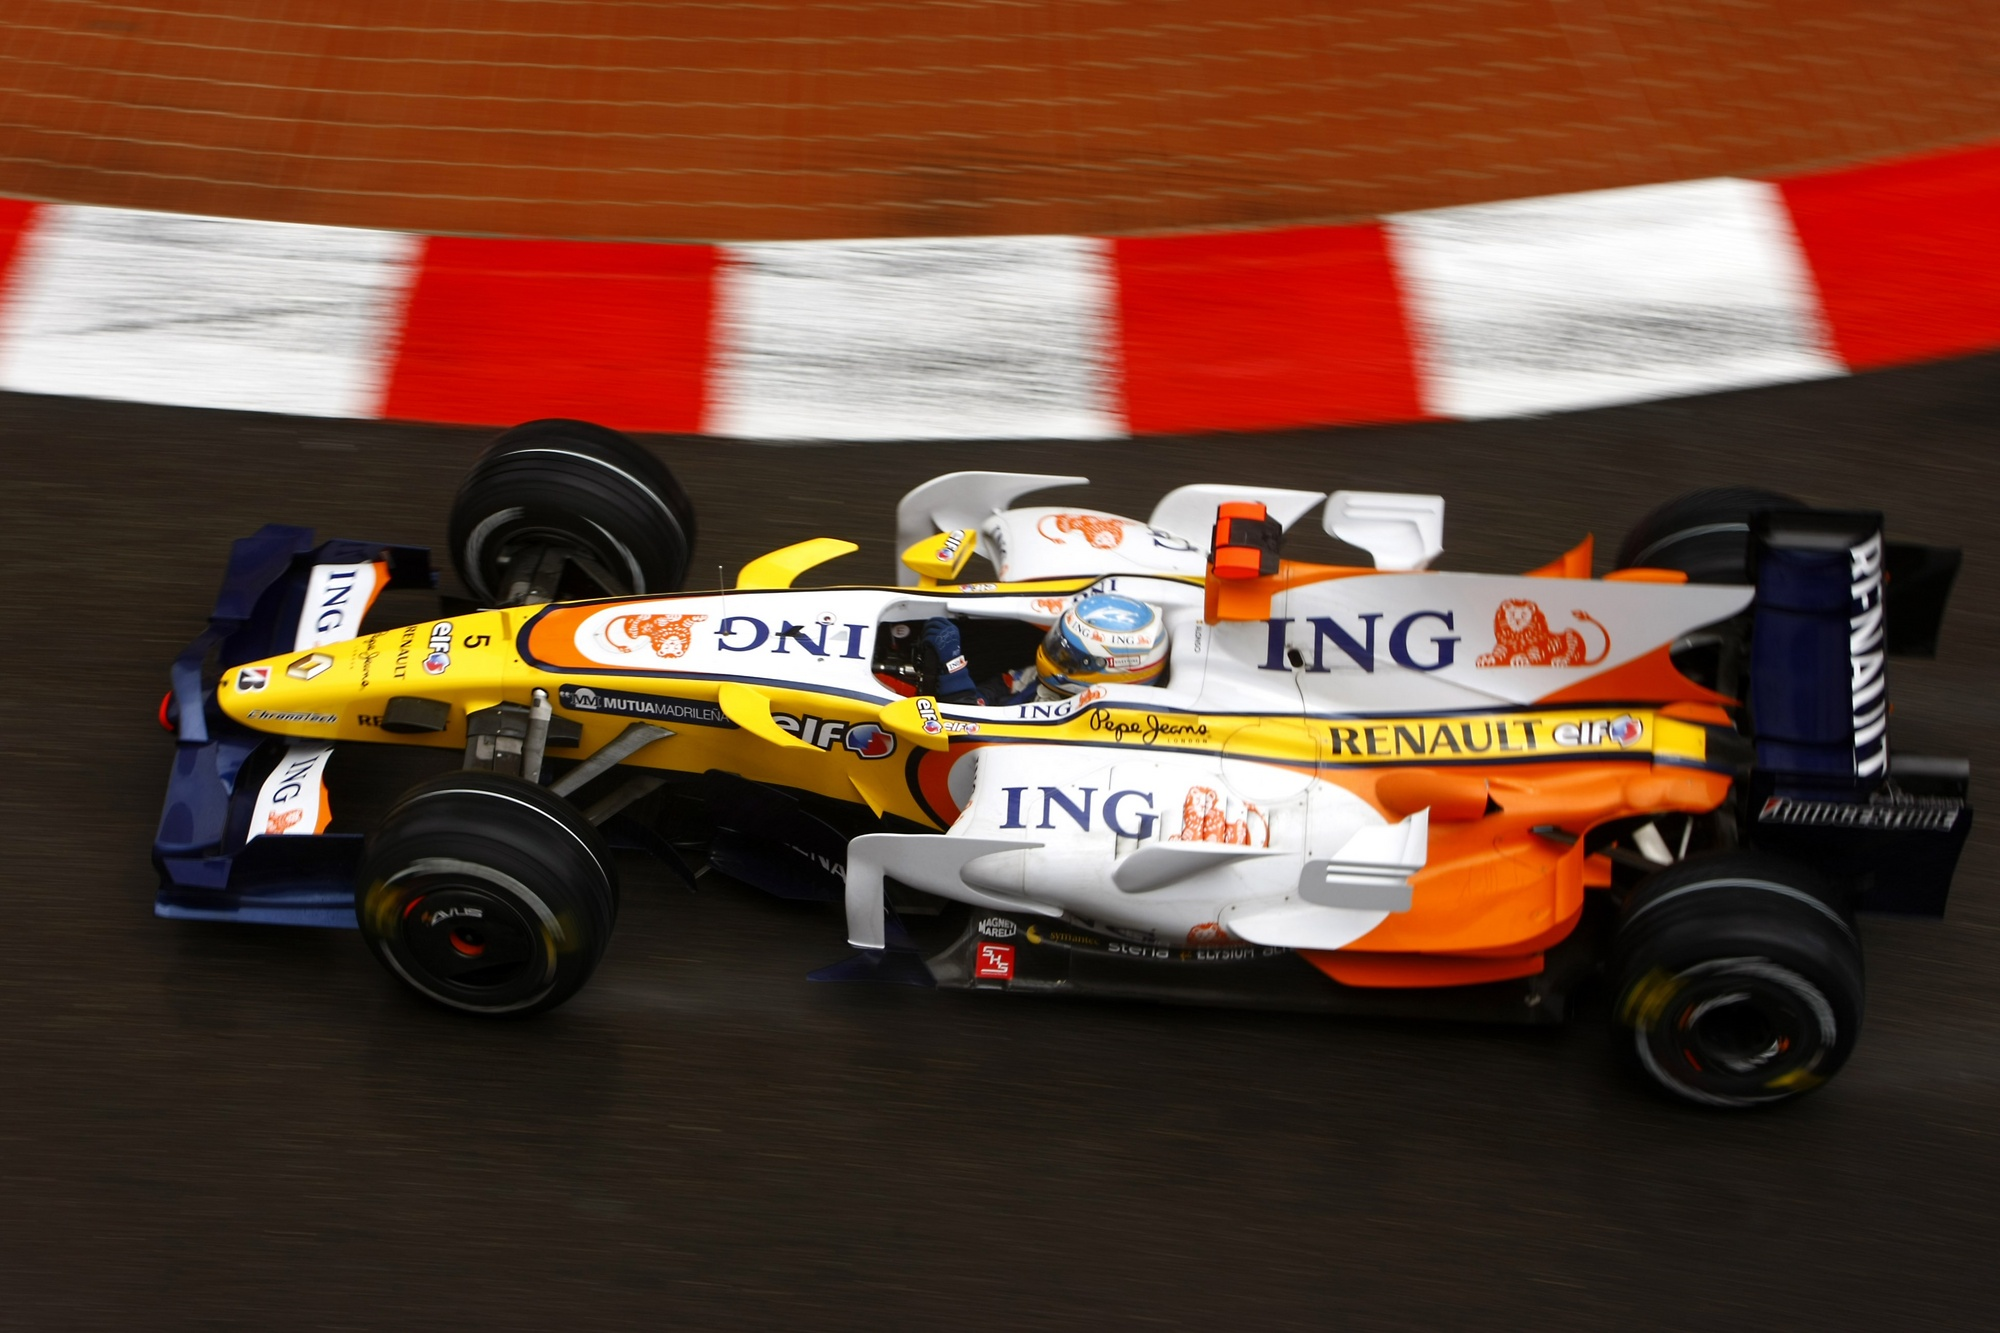 Renault r28 photo - 1